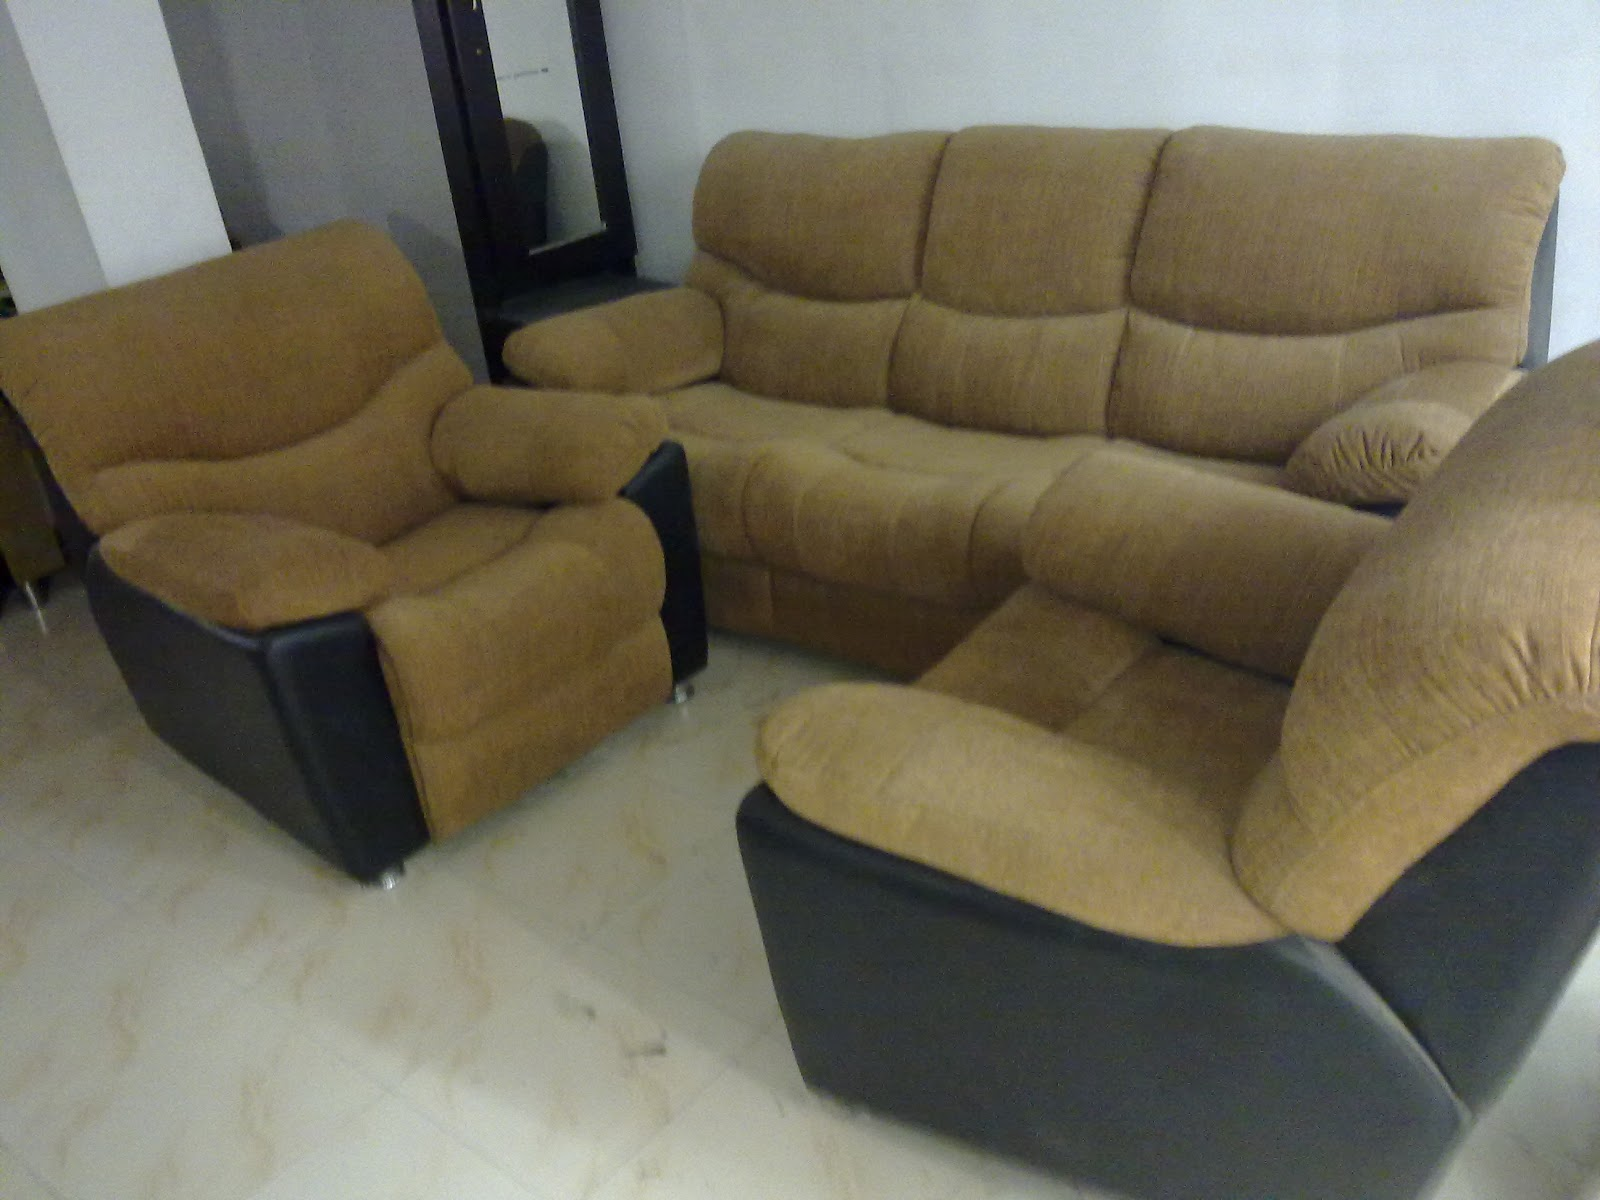 cane sofa cost in hyderabad leather deals uk union furniture and secunderabad sets